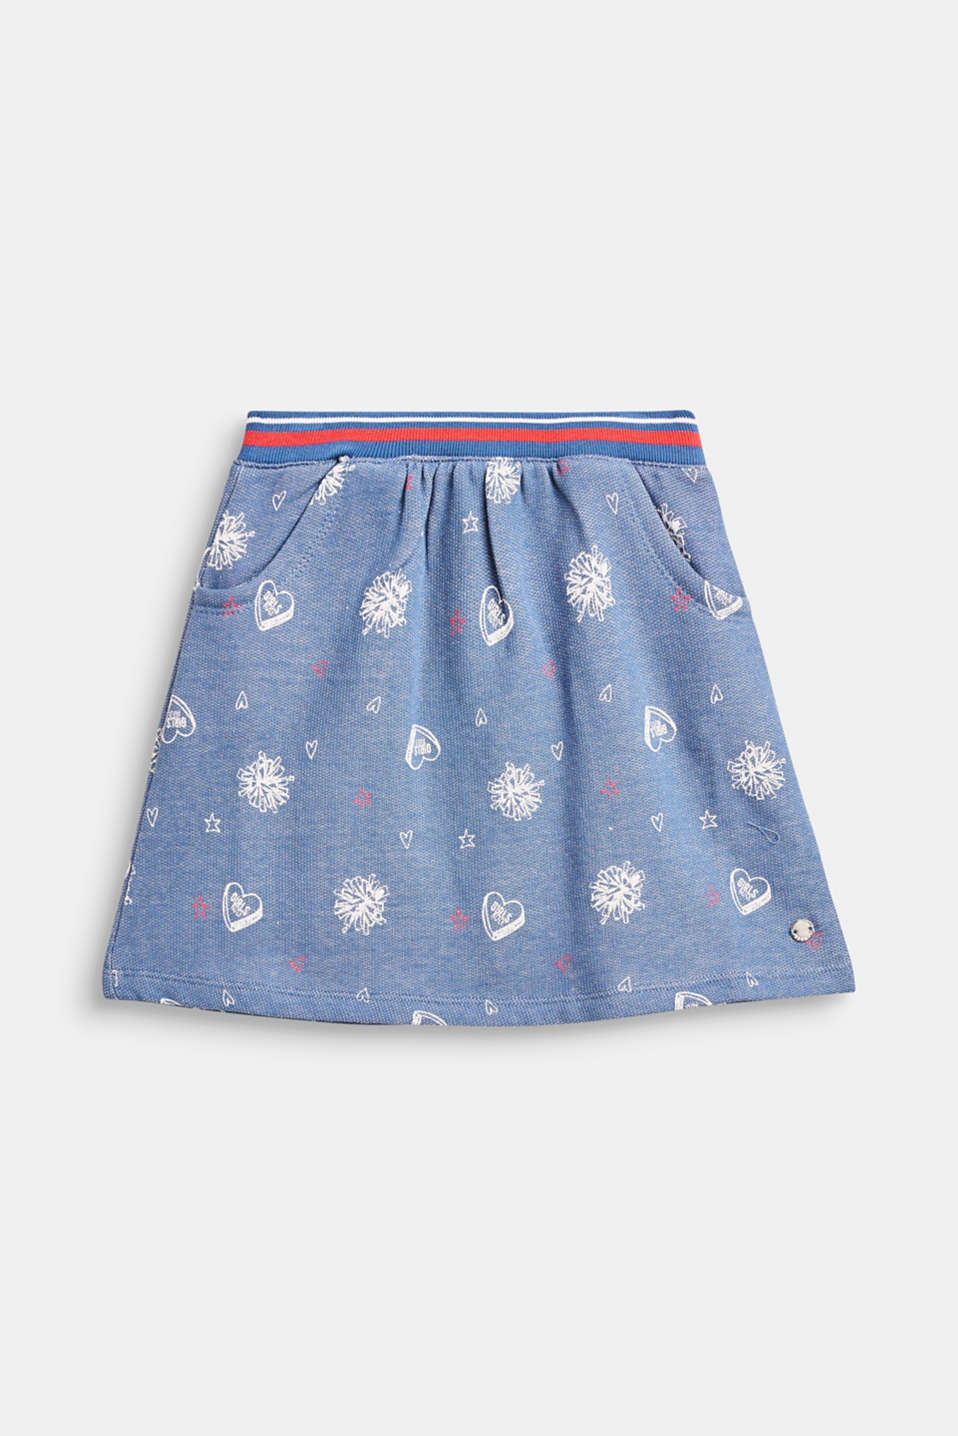 Esprit - Sweatshirt fabric skirt in a denim look, 100% cotton